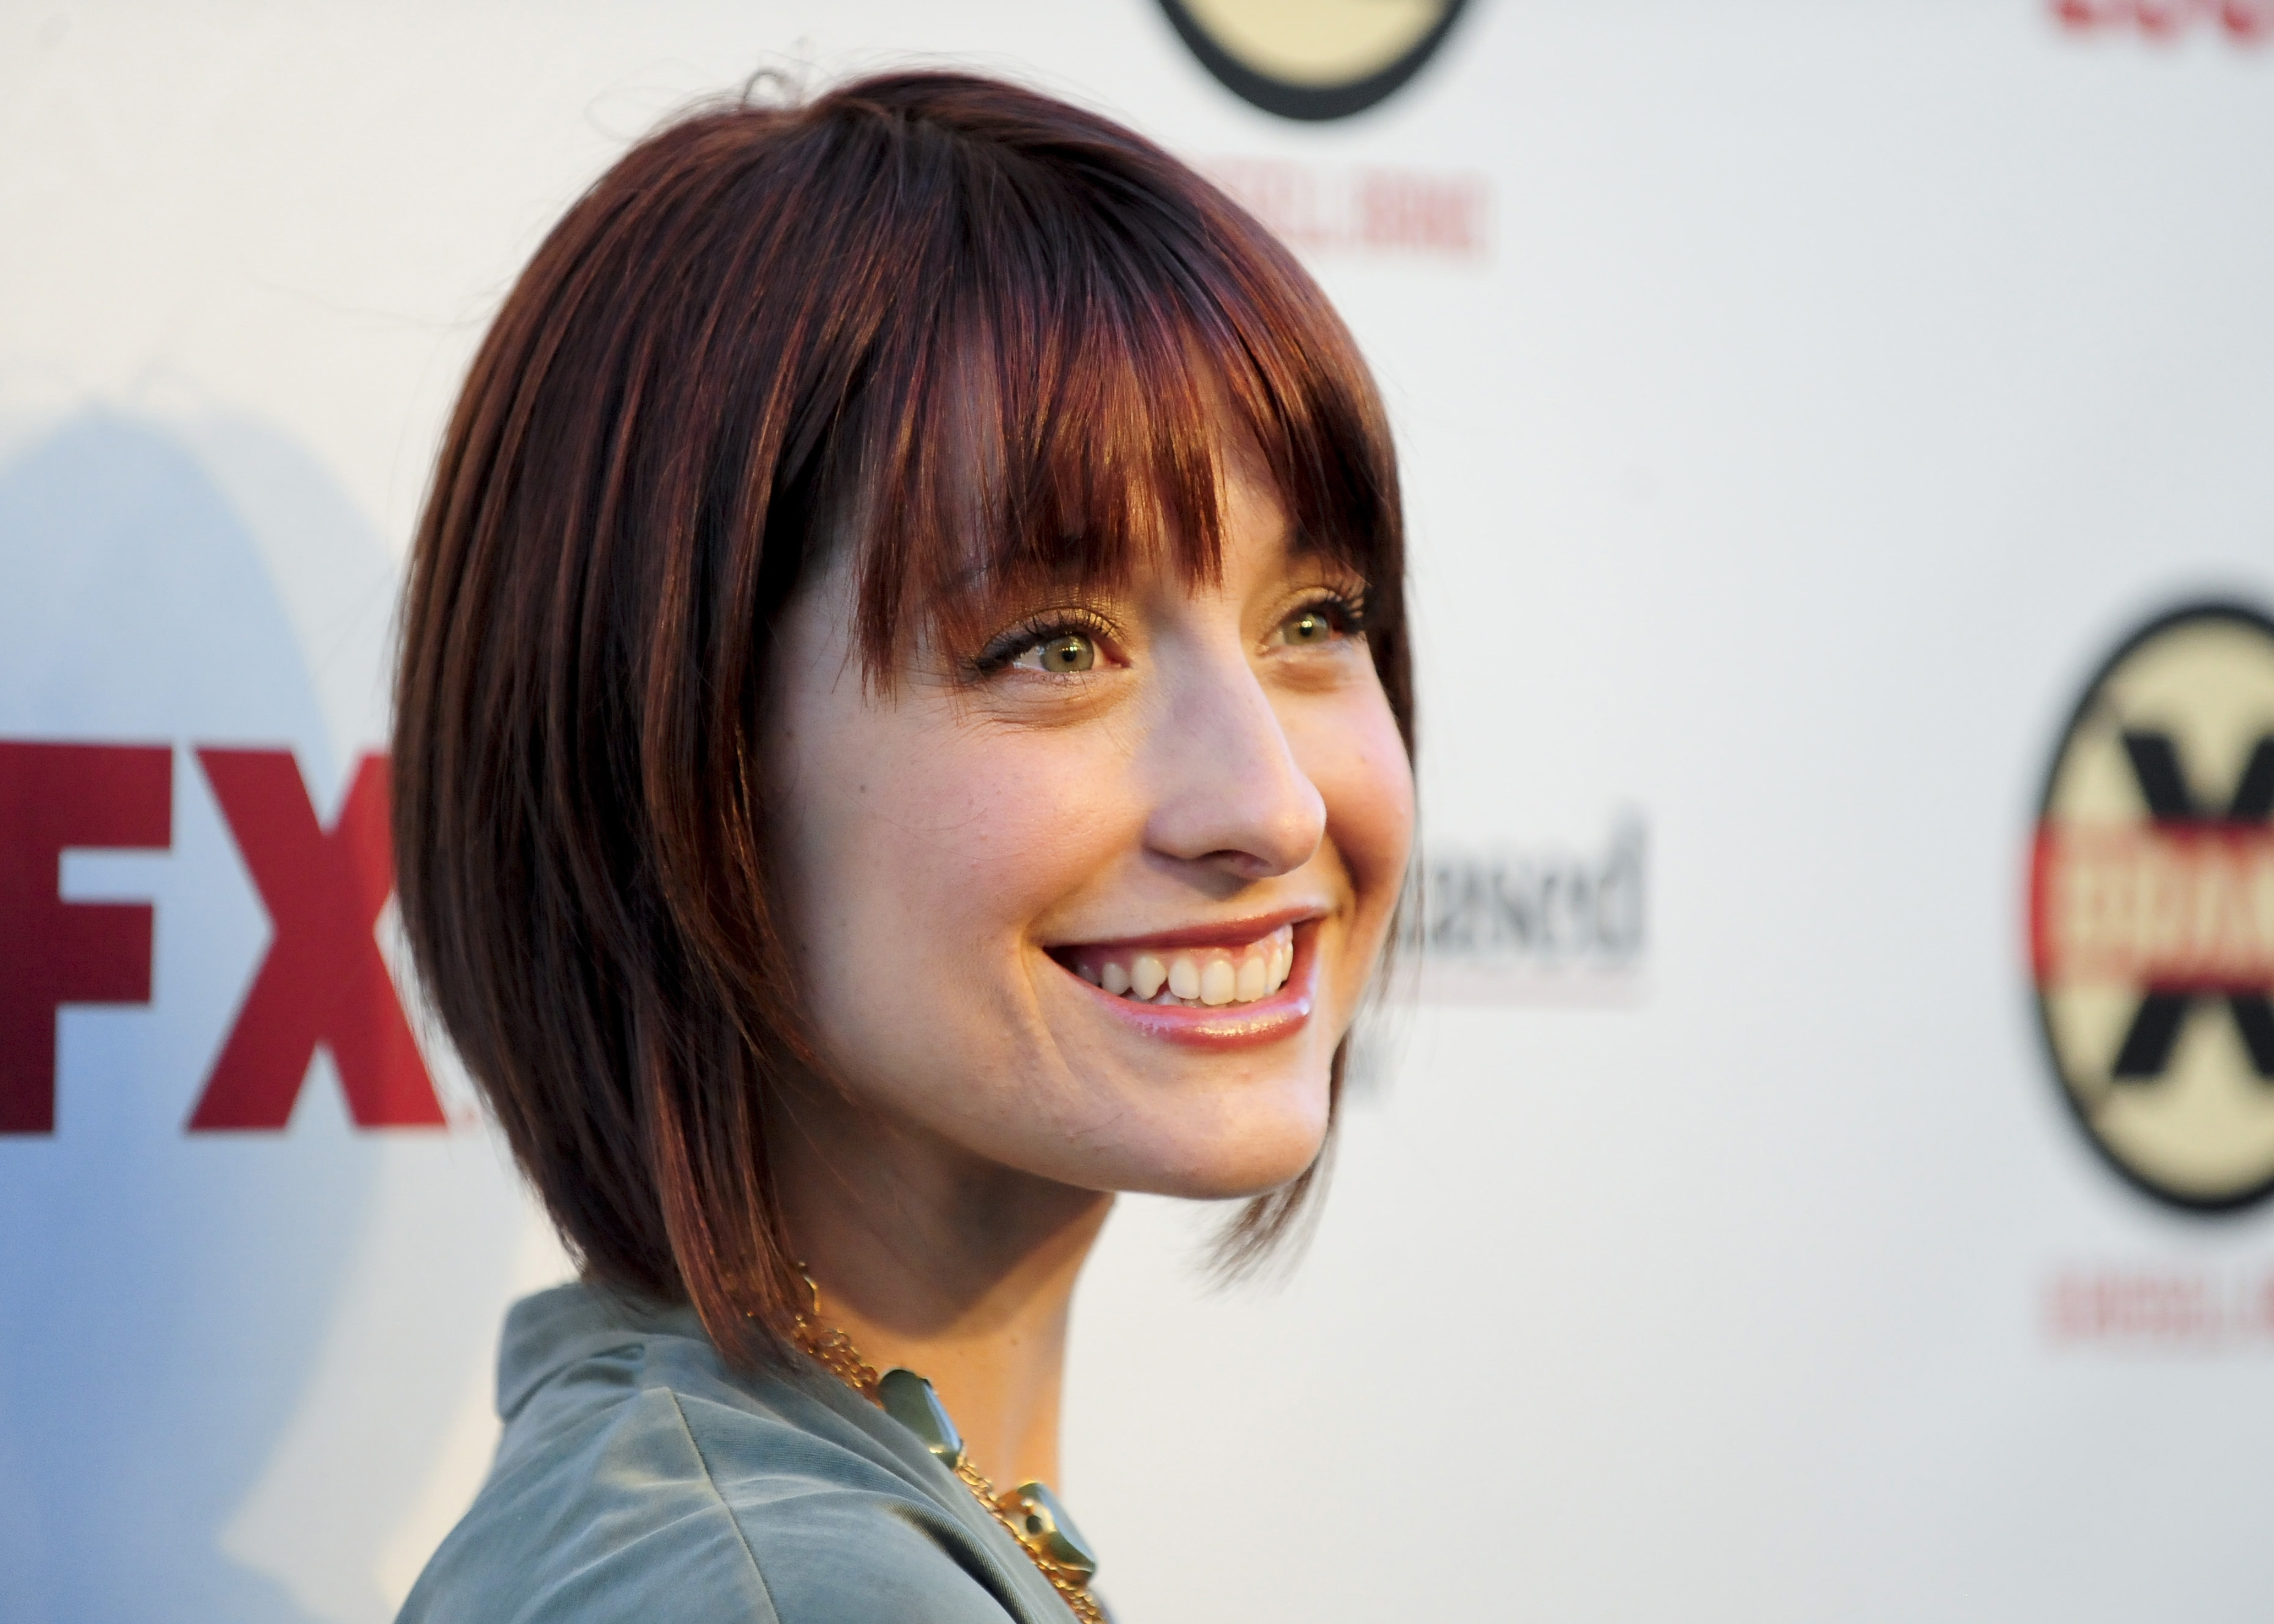 Smallville actor Allison Mack, seen in this photo from 2012, became a devoted follower of Raniere's. (Gus Ruelas/Reuters)